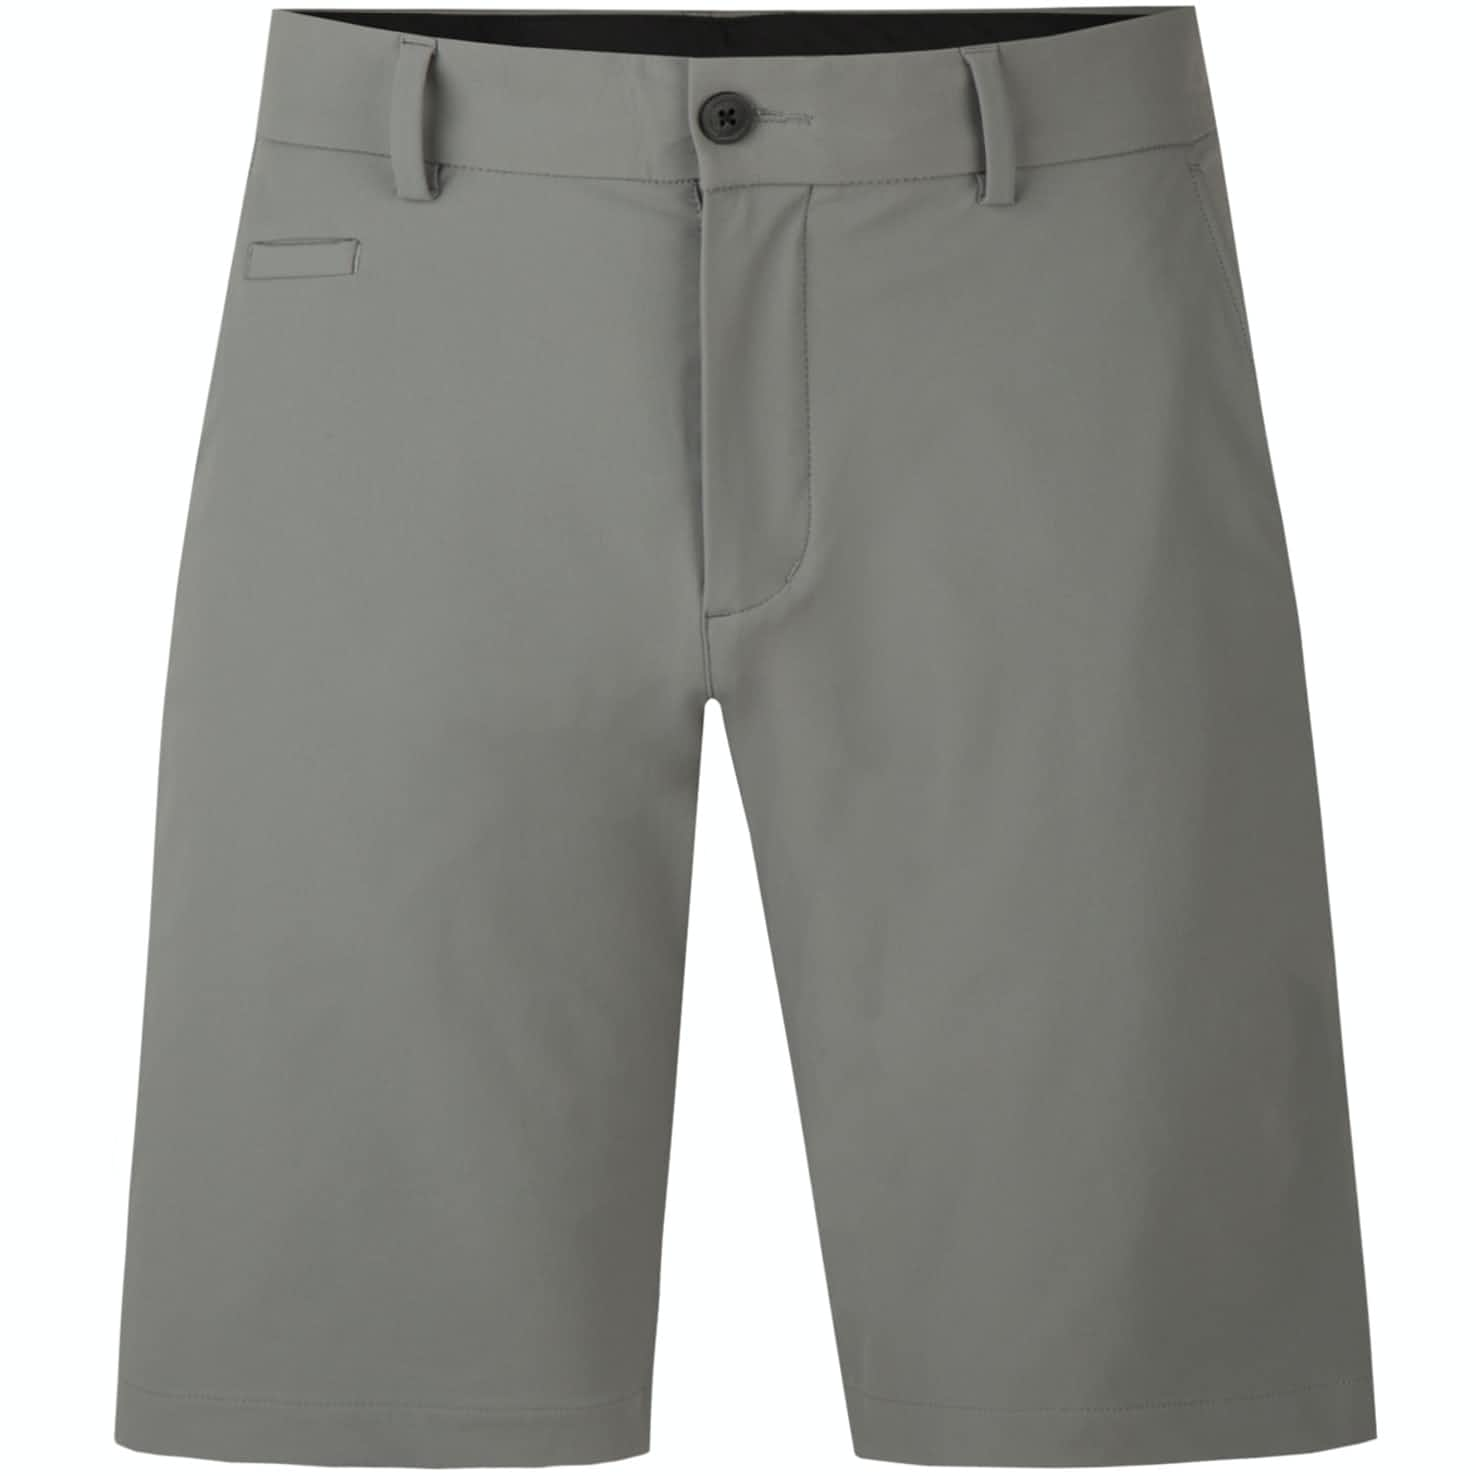 Ike Shorts Steel Grey - 2020